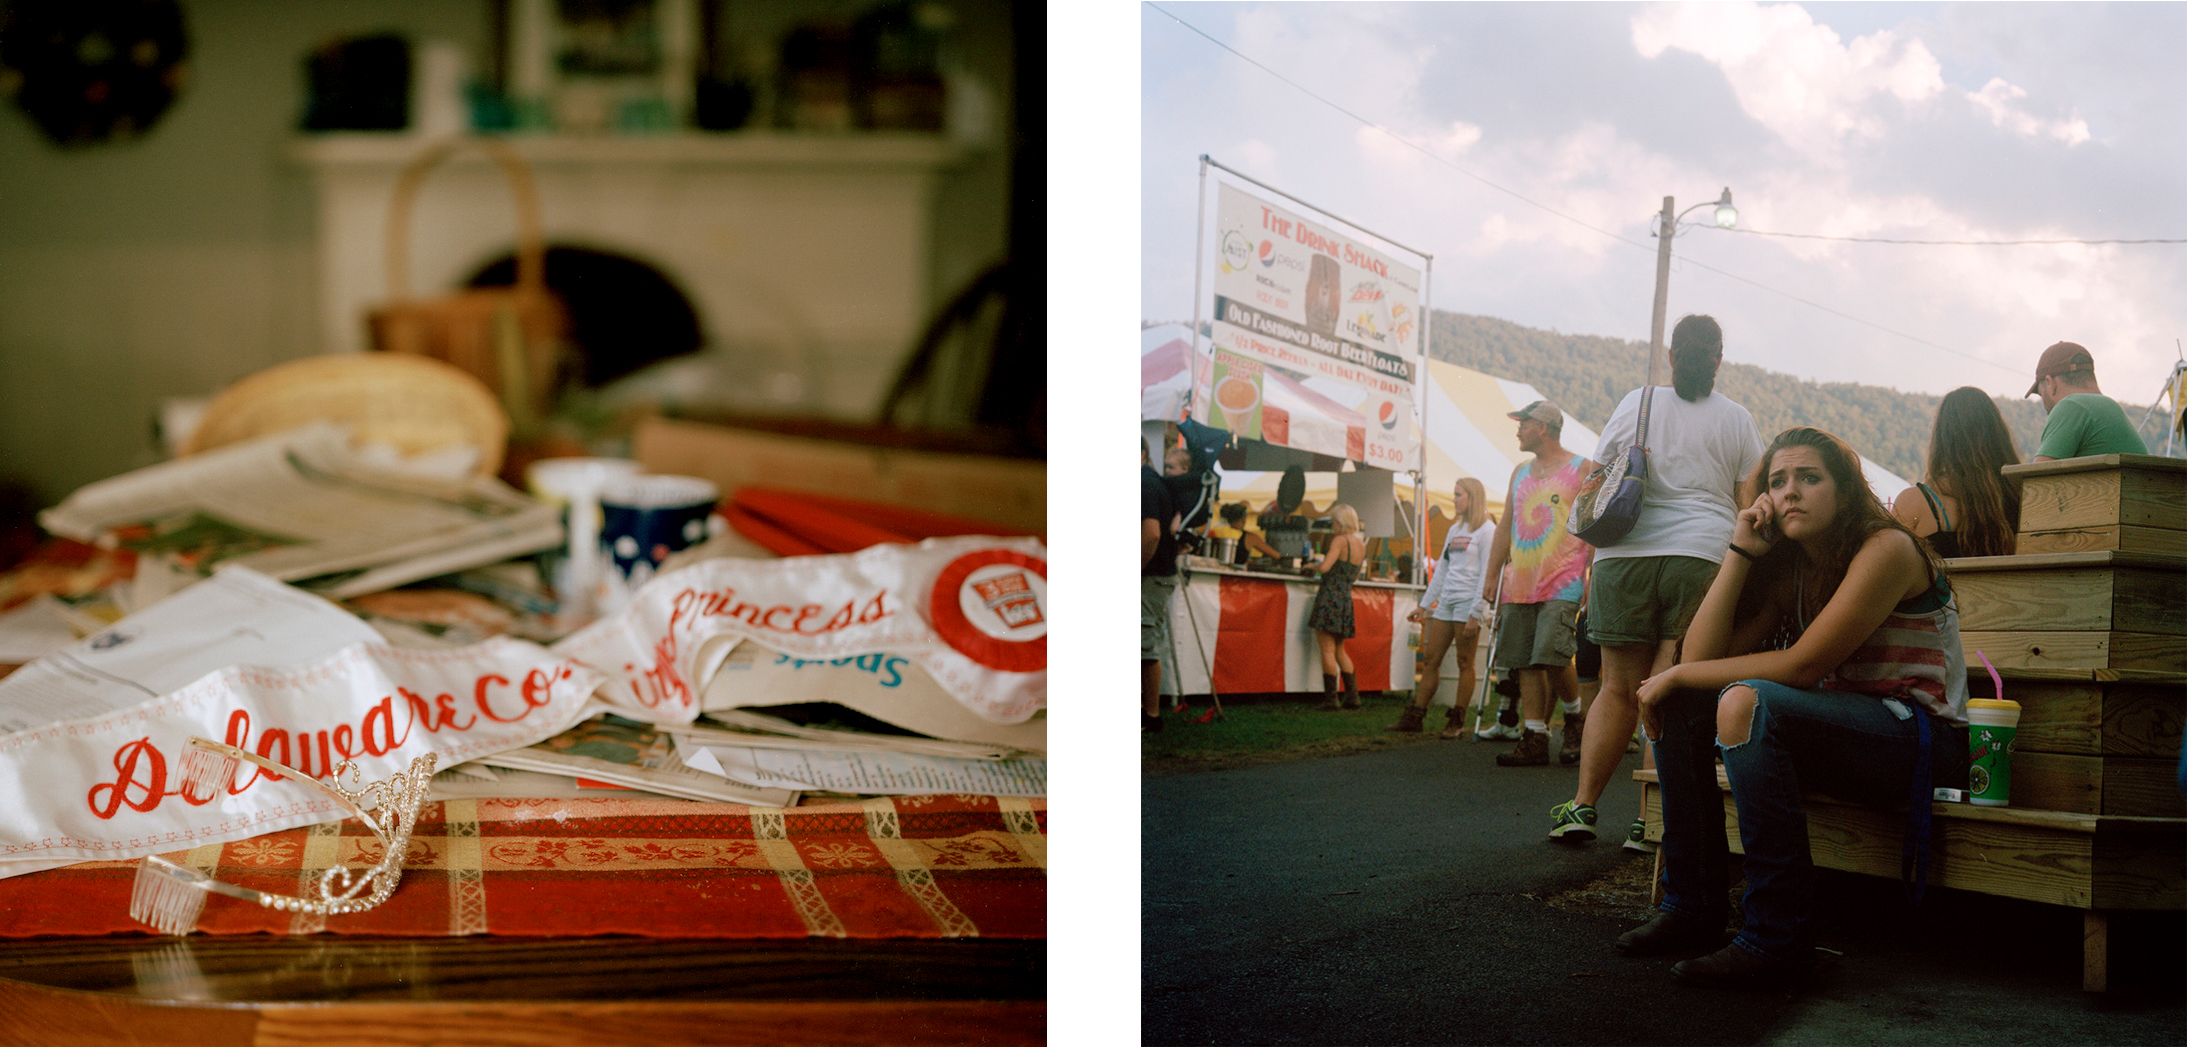 L: Miquela Hanselman's Delaware County Dairy Princess sash on her family's dining room table. R: The Delaware County Fair.